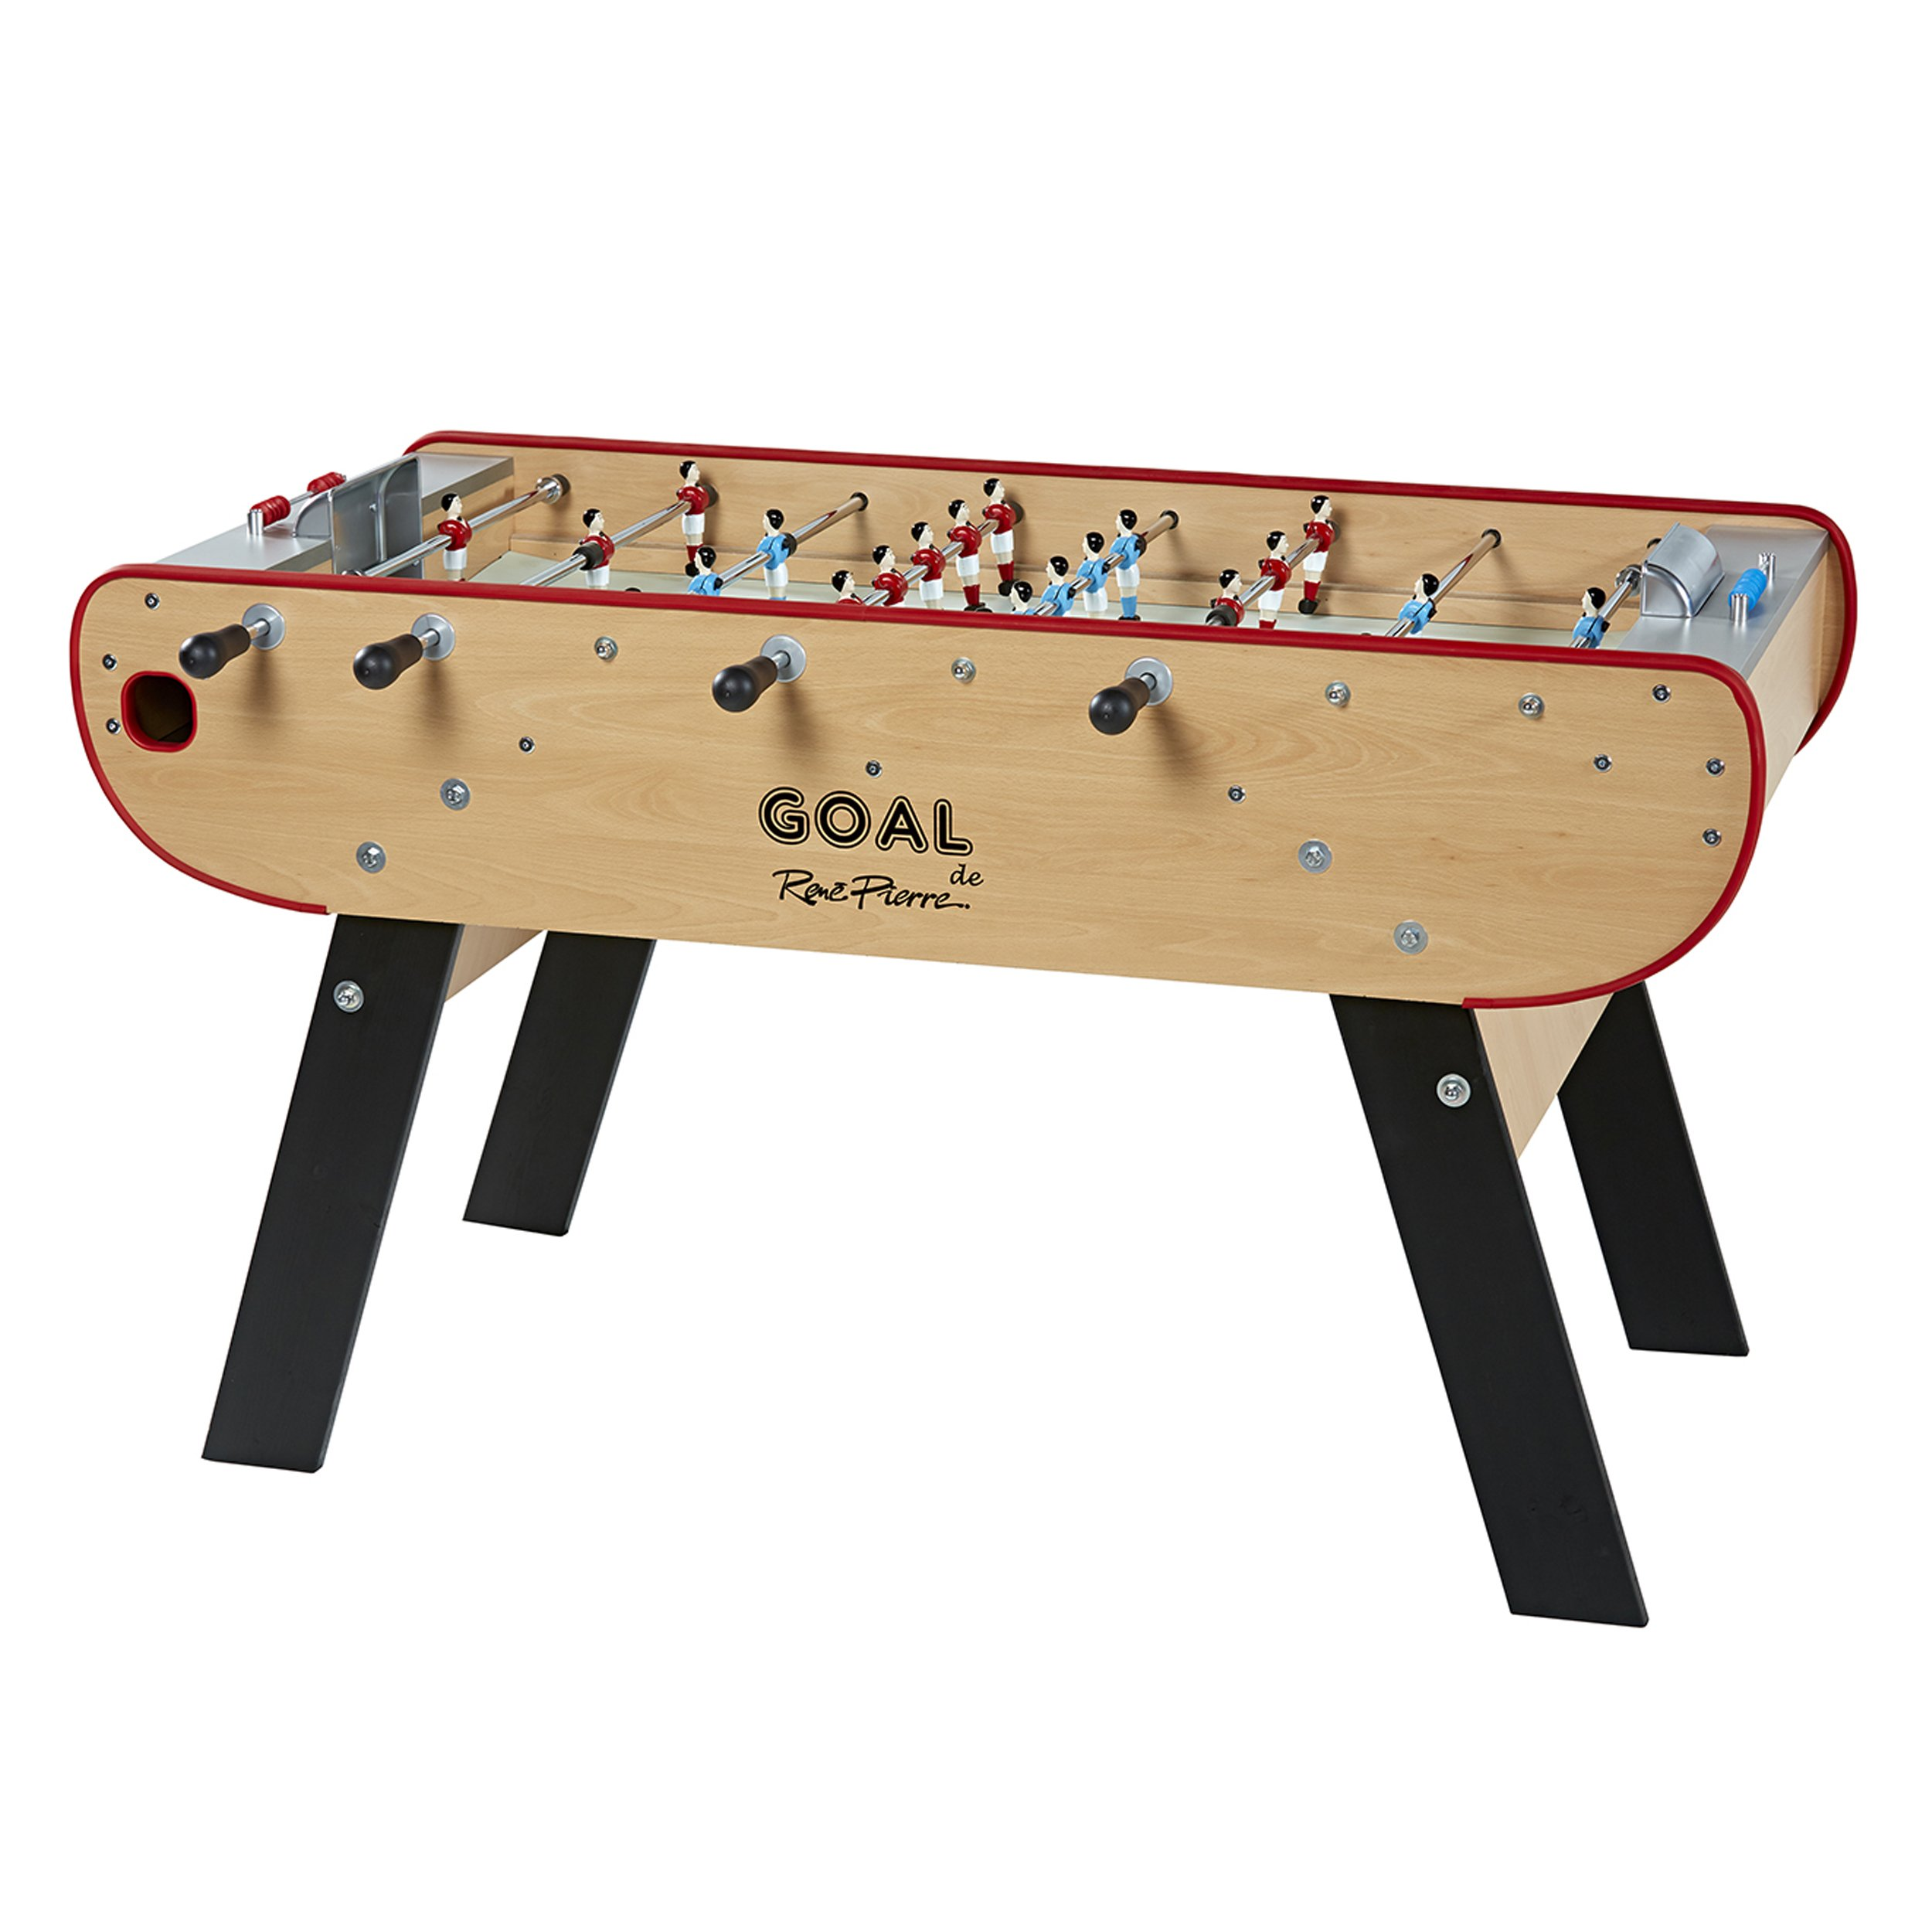 René Pierre Goal Foosball Table with Safety Telescoping Rods with Round Handles, Manual Scorers and Single Goalies